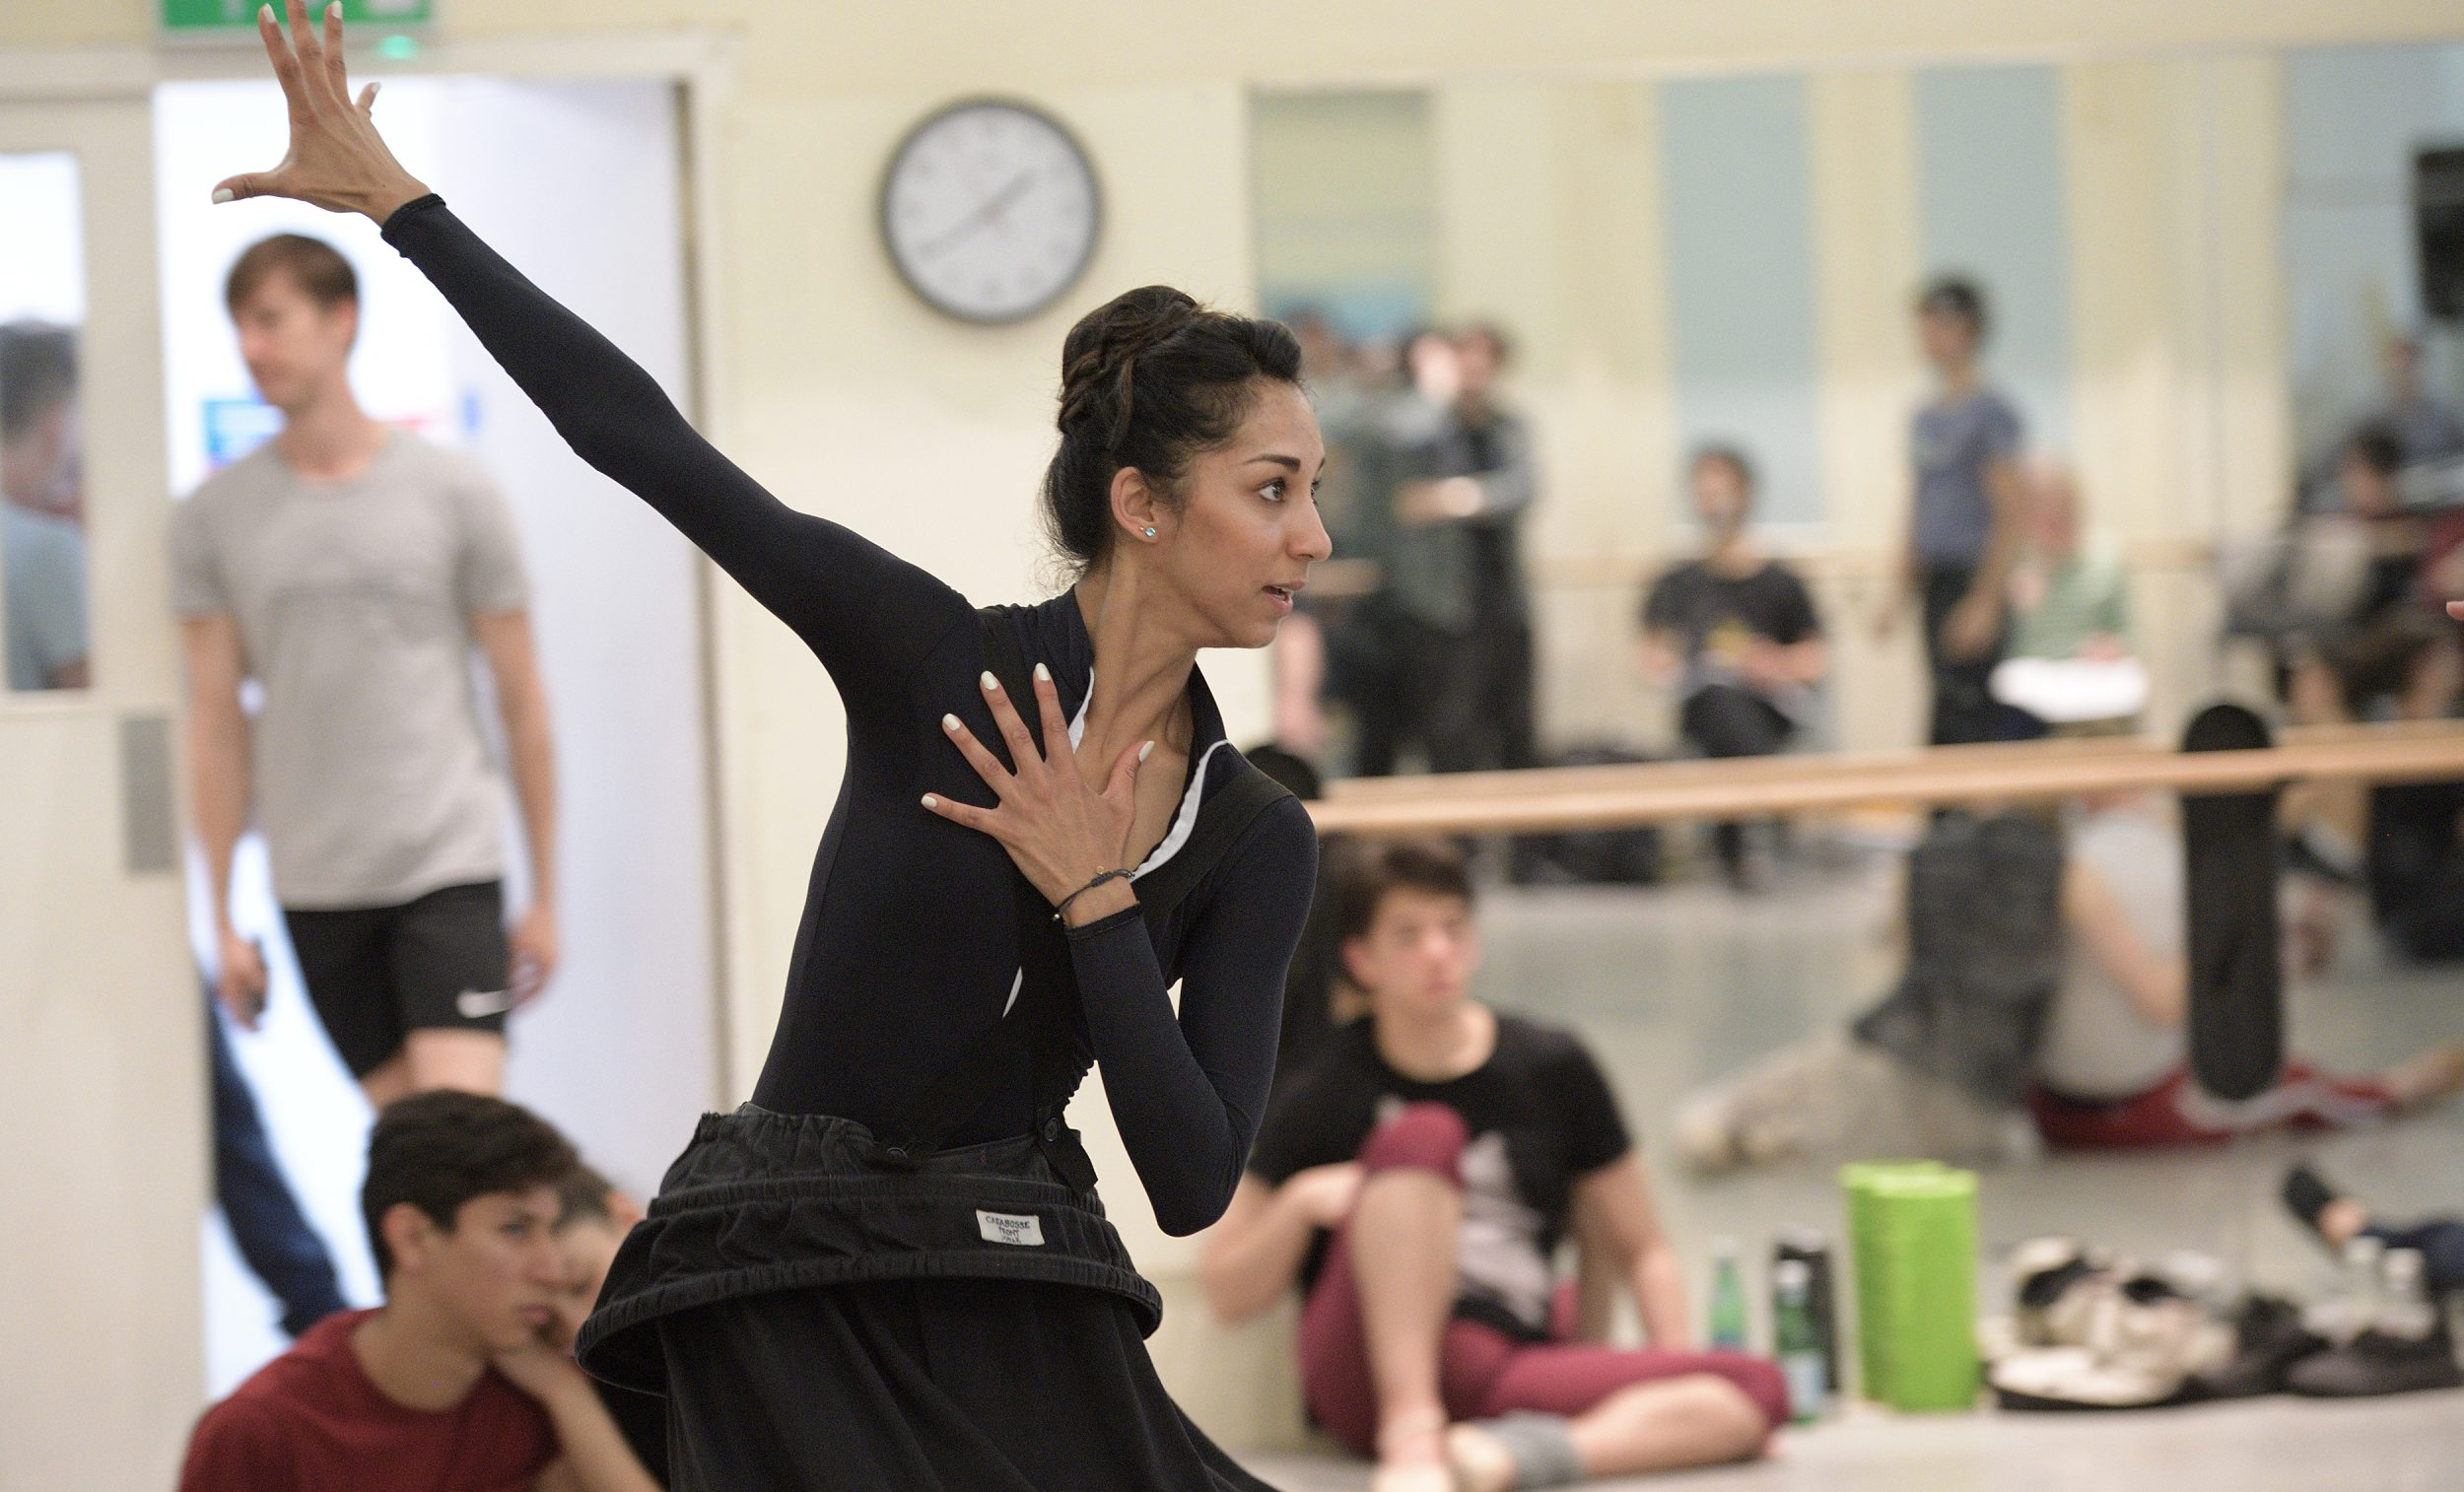 Sarah Kundi rehearsing The Sleeping Beauty © Laurent Liotardo (3)_WEB